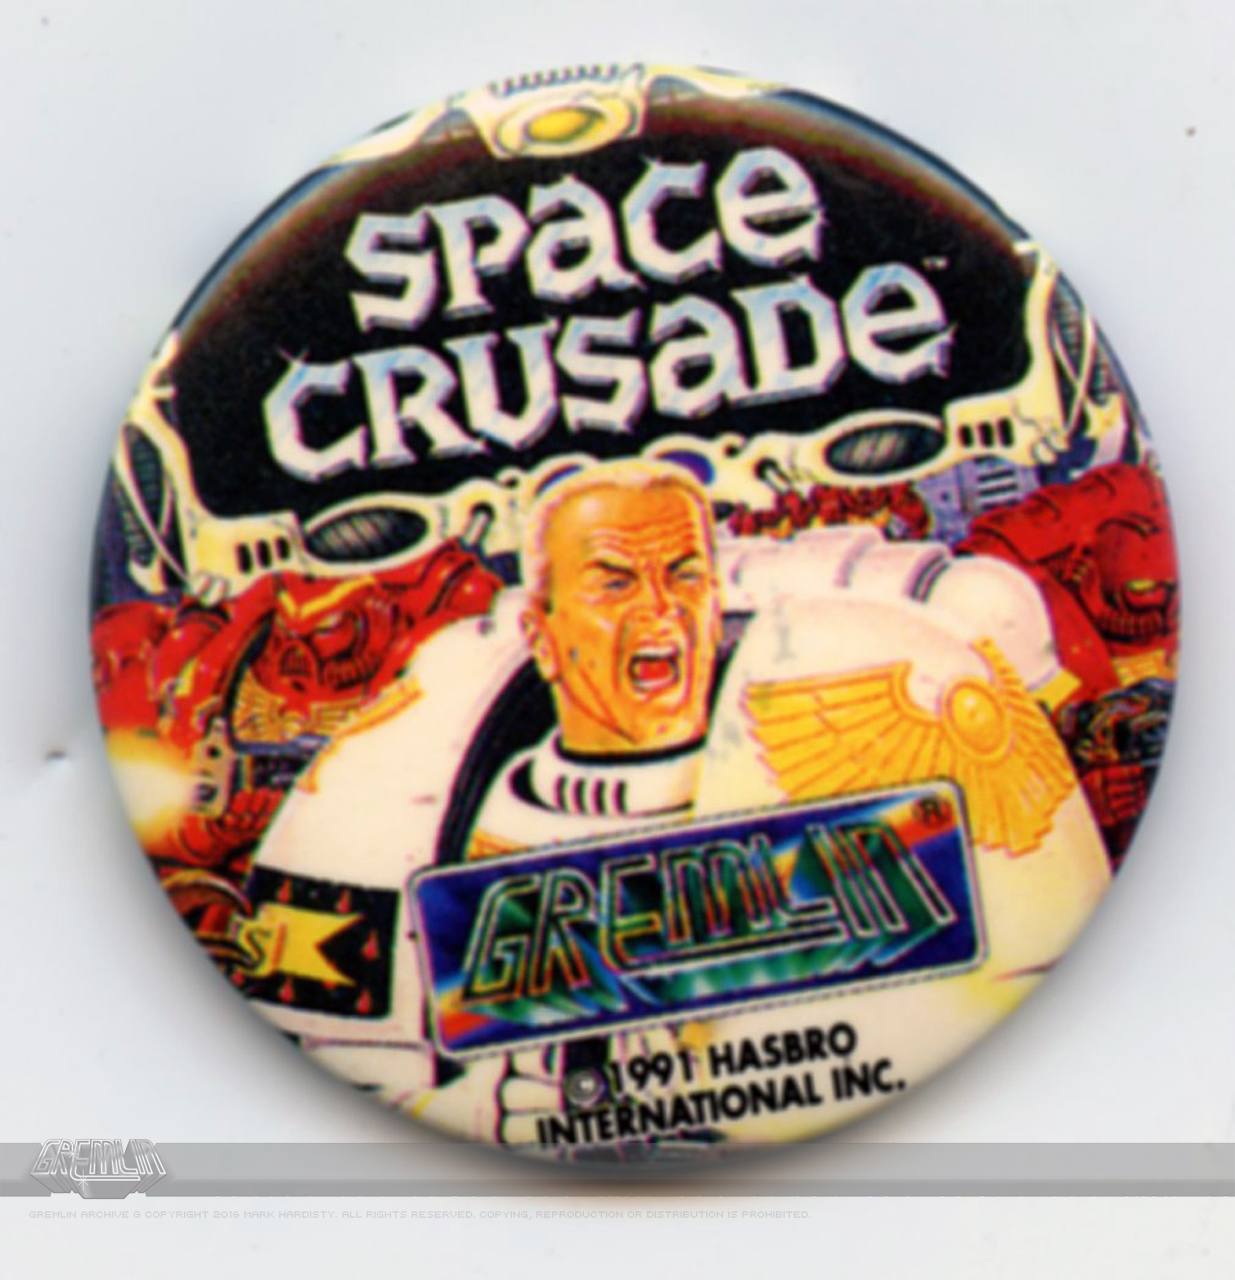 Space Crusade Badge